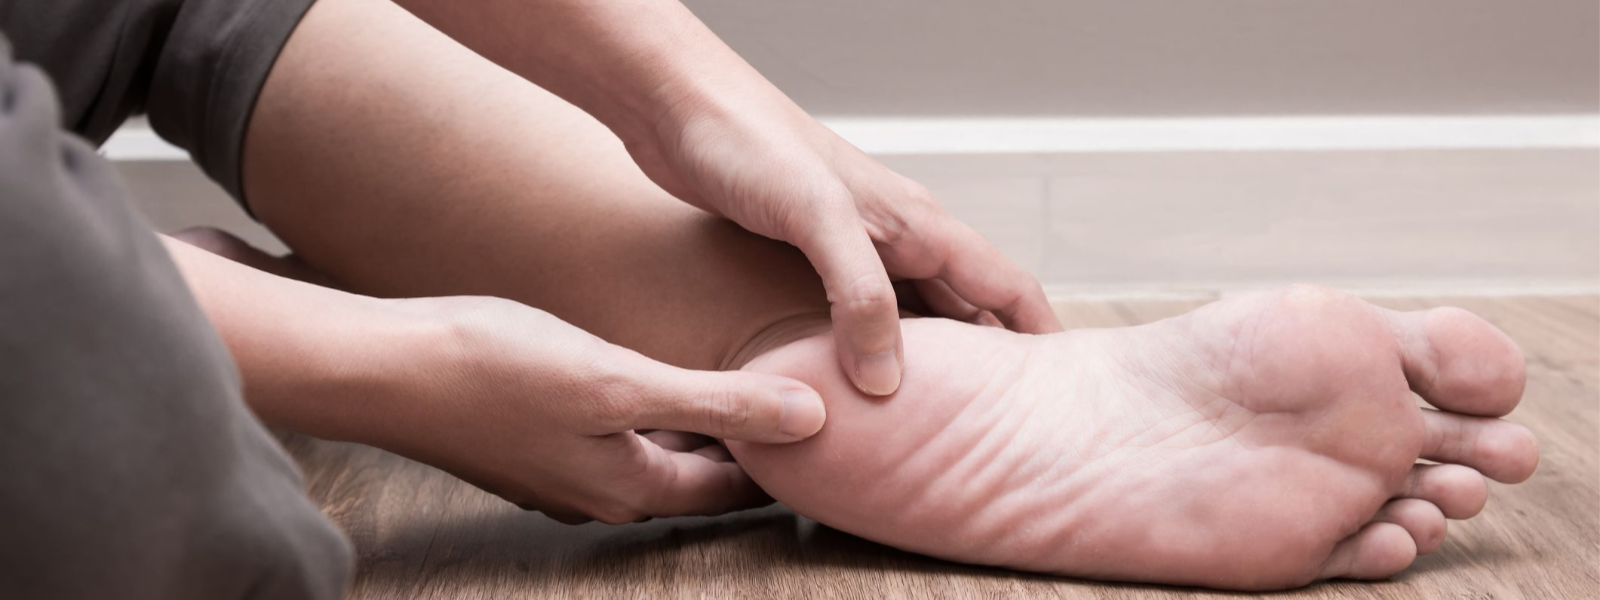 Top 10 Tools for Plantar Fasciitis